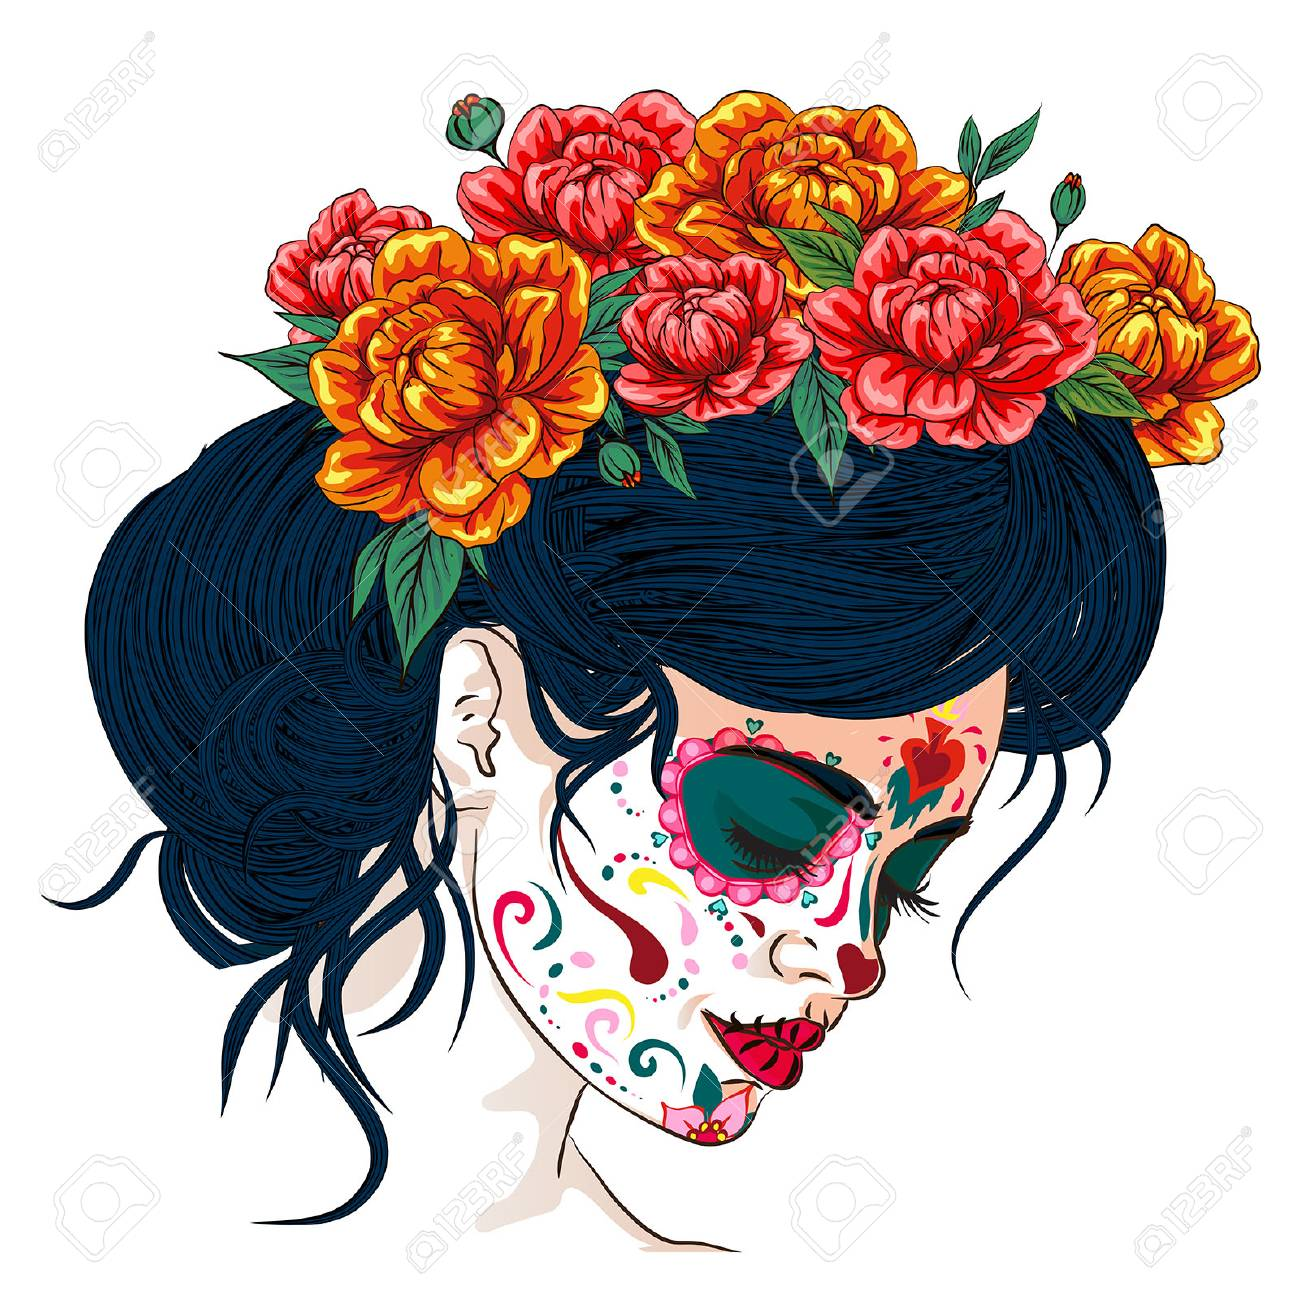 dia de los muertos day of the dead mexican holiday festival vector poster banner and card with, anta muerte woman make up sugar skull girl face with flowers wreath hand drawn - 110121331